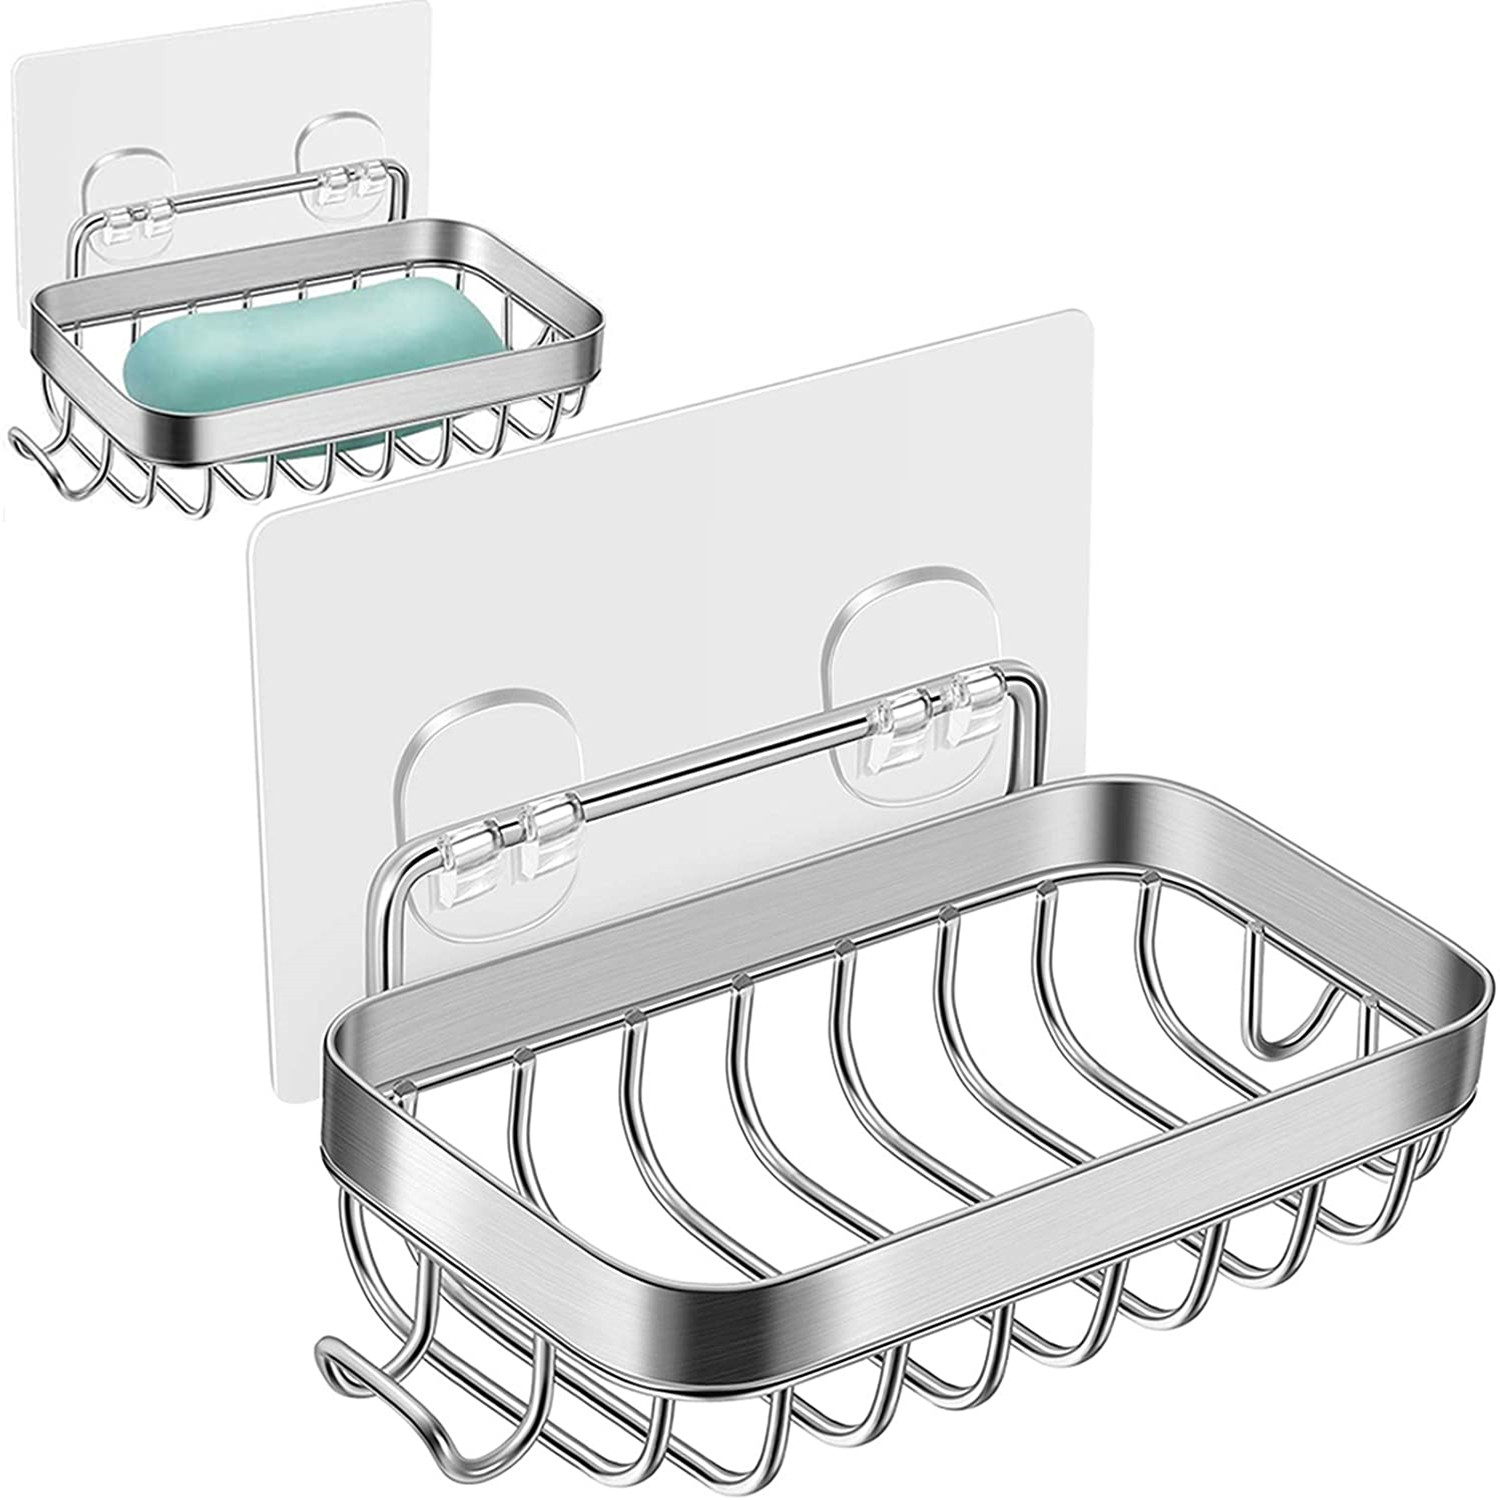 Soap Dish, 2 Pack Soap Dish for Shower with Hook Wall Mounted Bar Soap Holder for Bathroom Kitchen